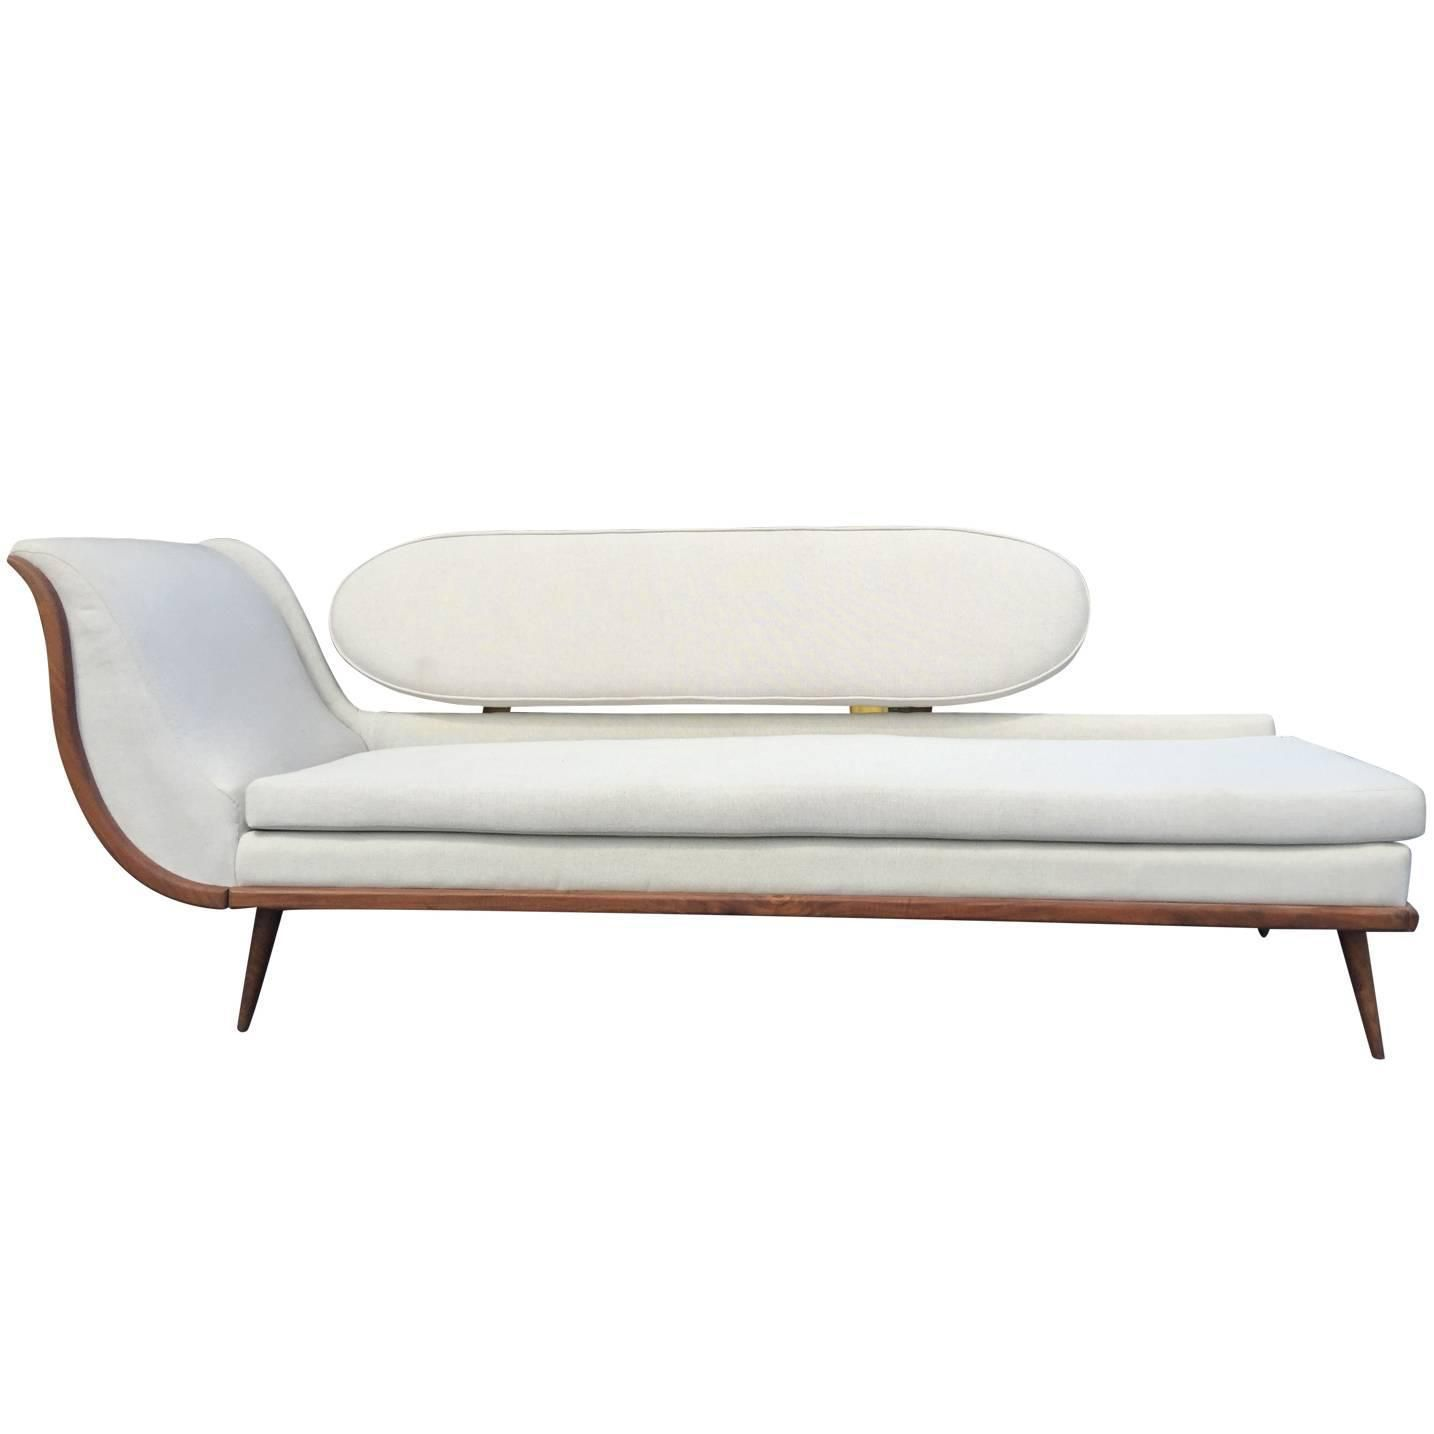 Reclining Sofa Exquisite Mid Century Modern Sofa Settee by Cimon of Montreal See more antique and